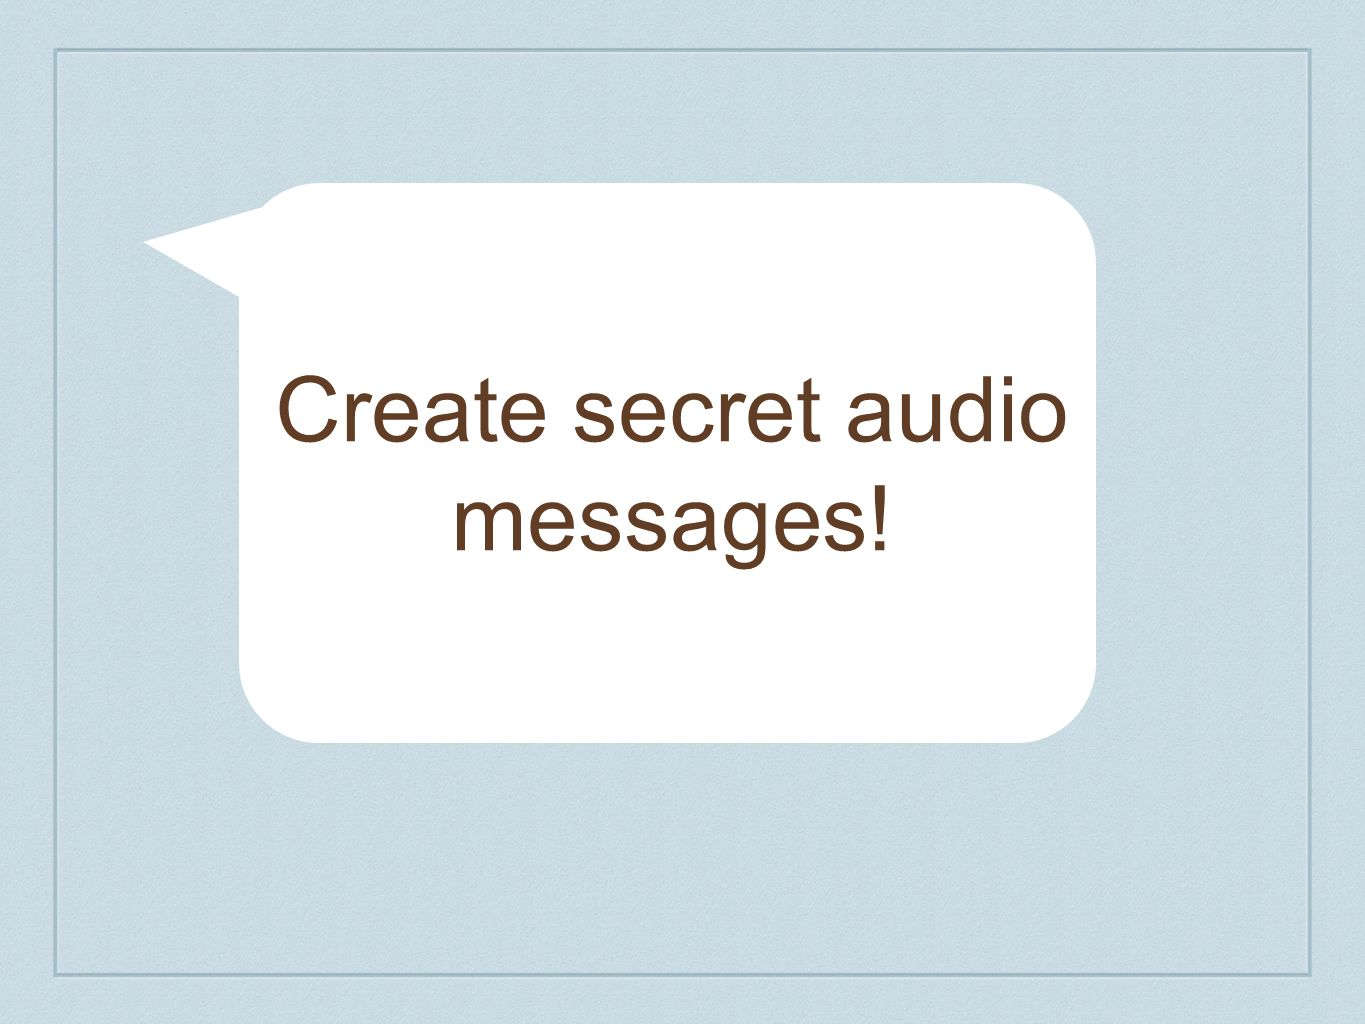 Create secret audio messages!